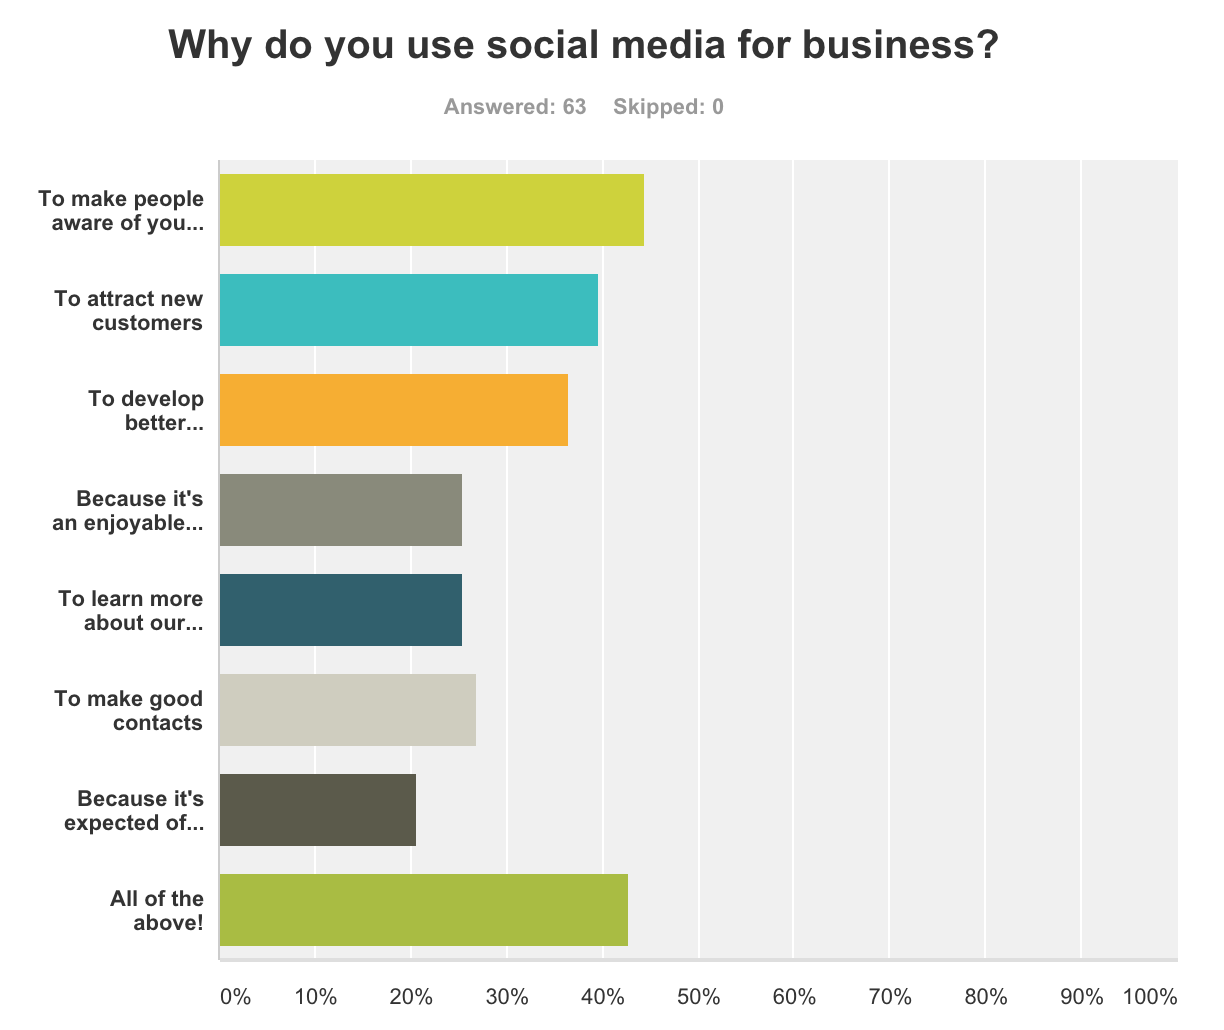 Why do you use social media for business